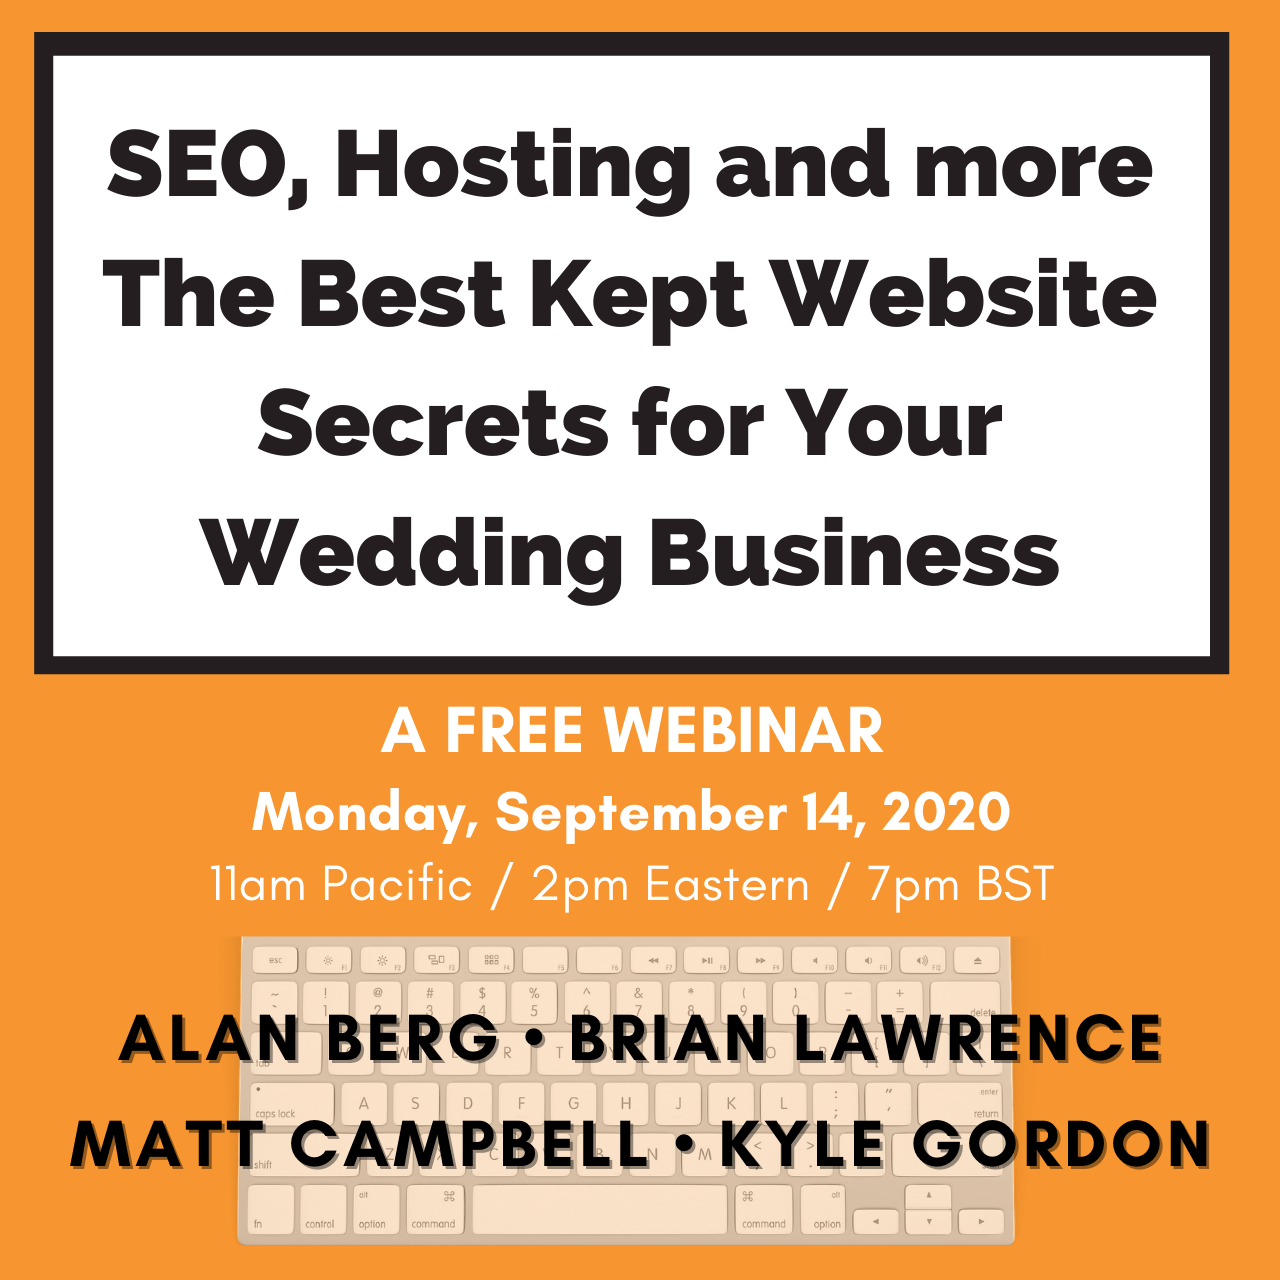 SEO, Hosting and more - The Best Kept Website Secrets for Your Wedding Business